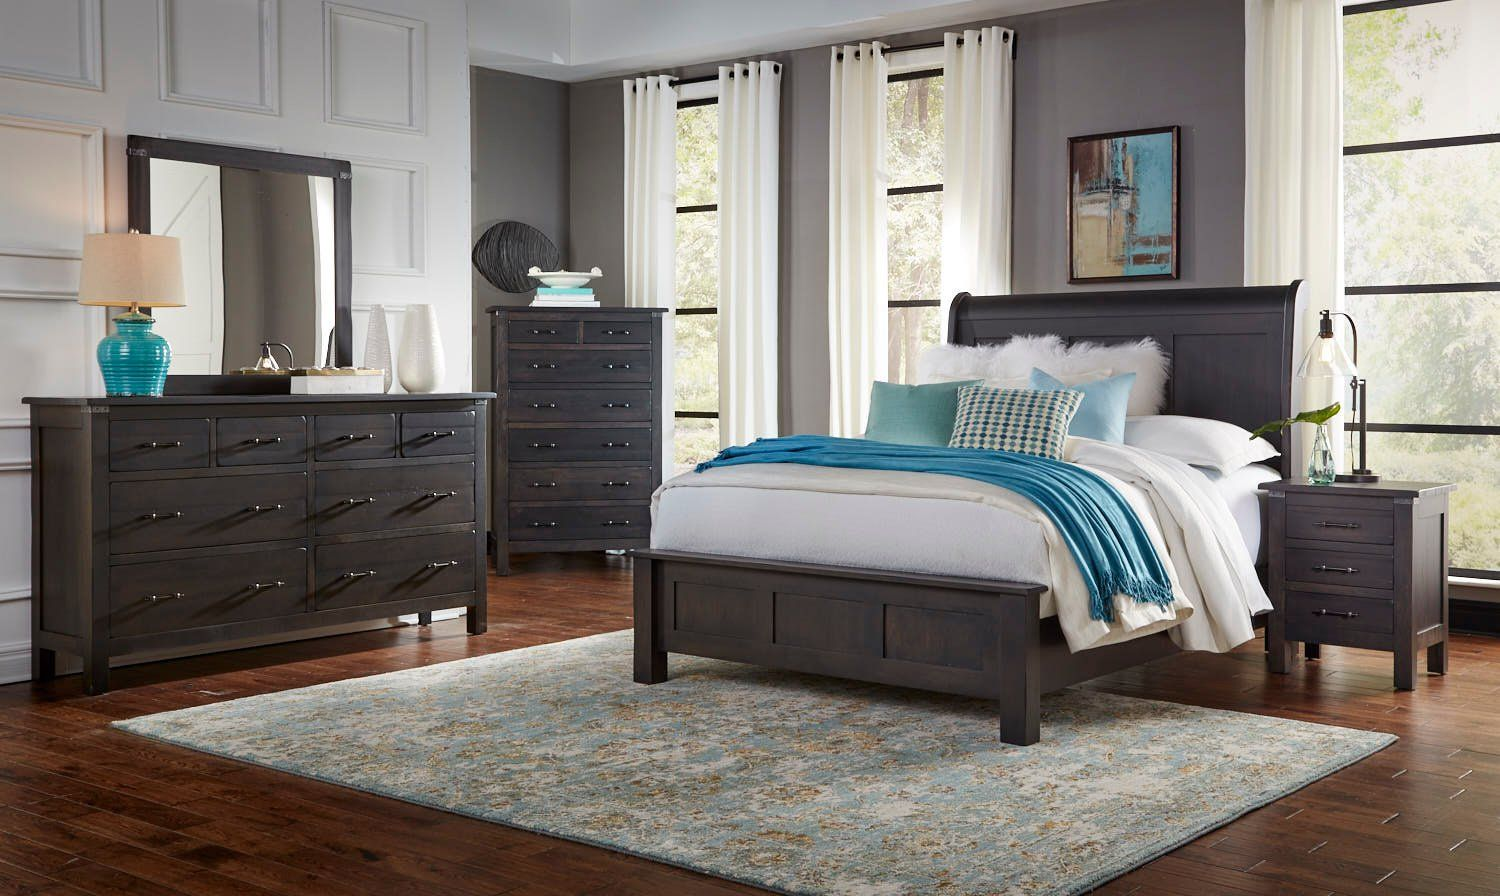 Rustic Distressed Cherry 4 Piece King Bedroom Set Colin